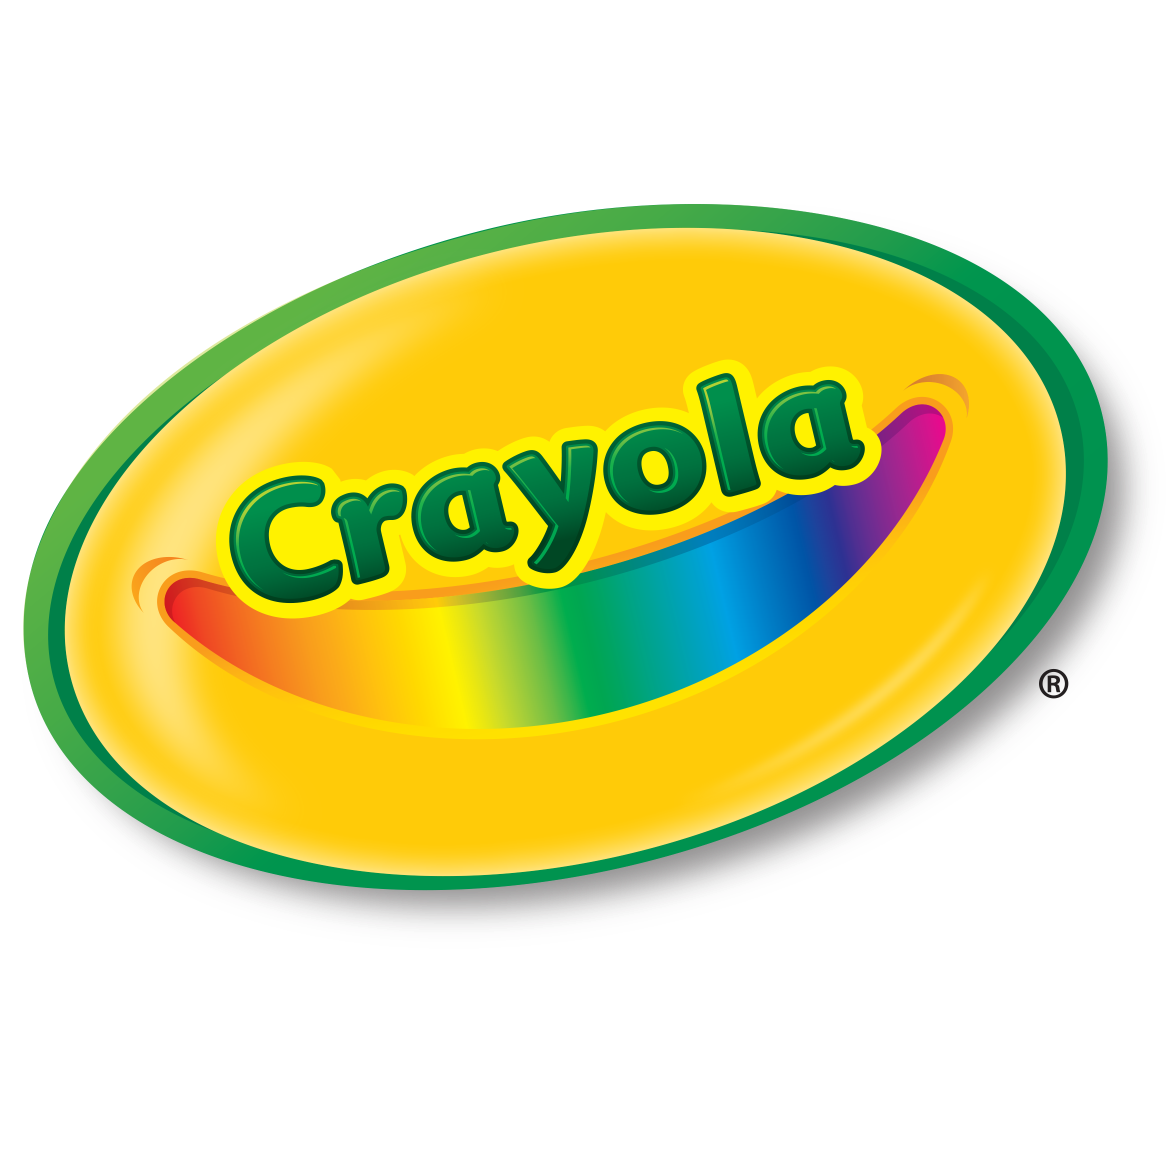 Crayola Emoji Maker Review Crayola coloring pages